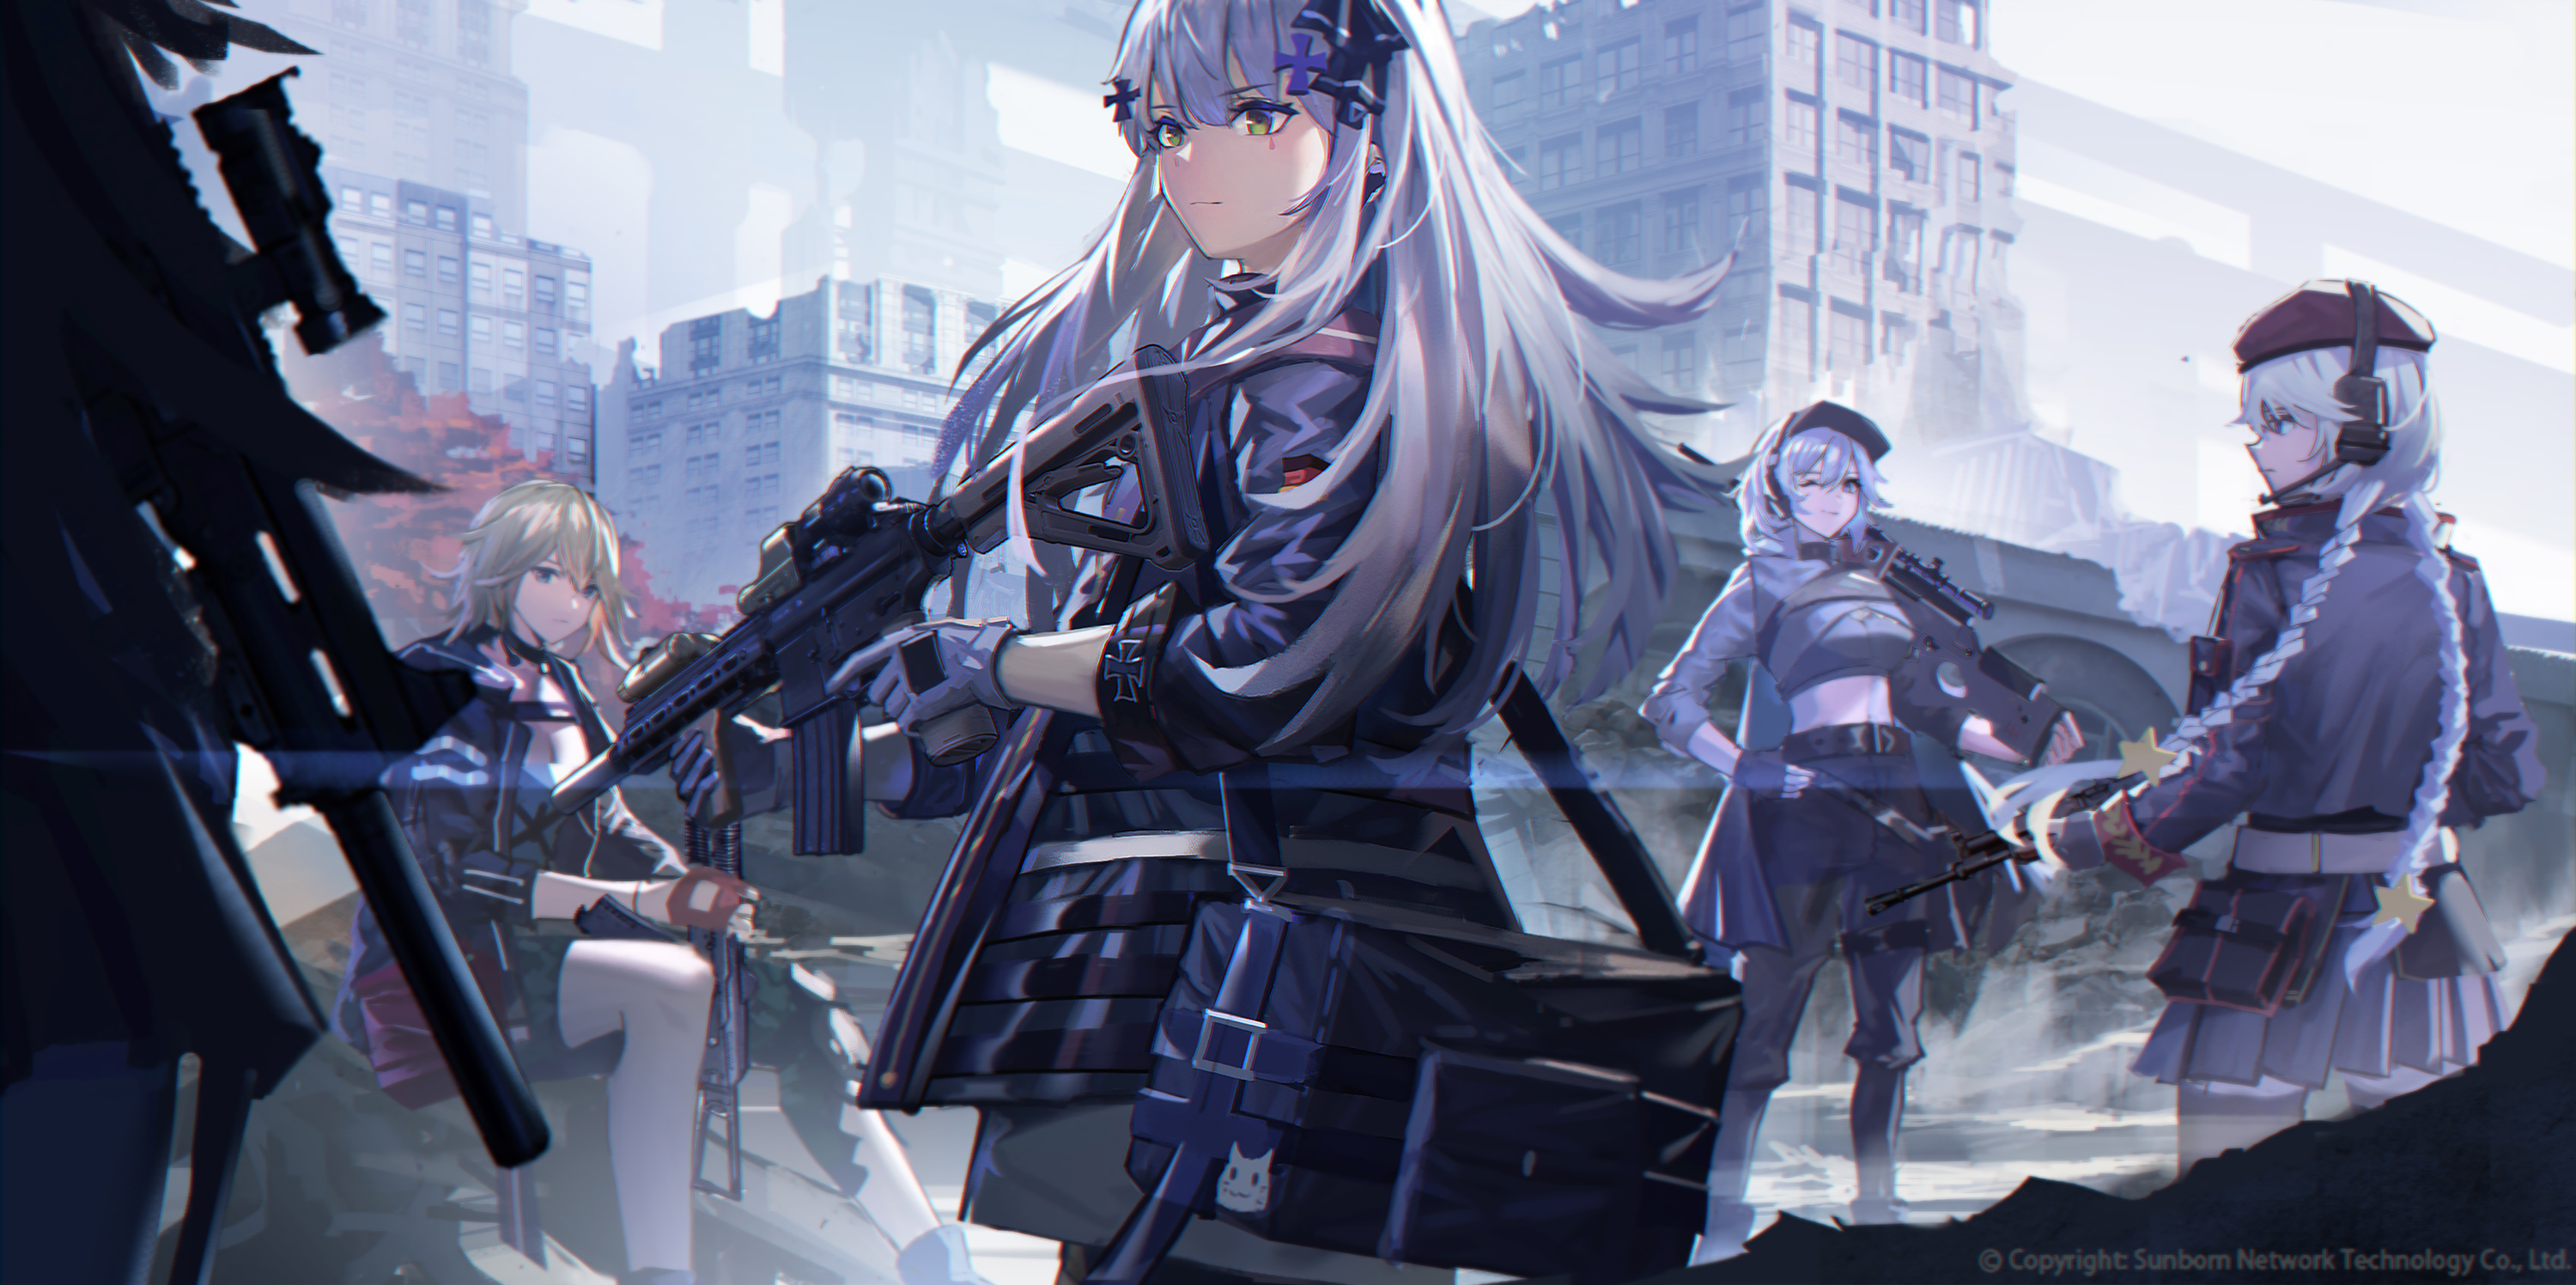 Anime 3000x1496 anime anime girls digital art artwork 2D portrait Girls Frontline HK416 (Girls Frontline)